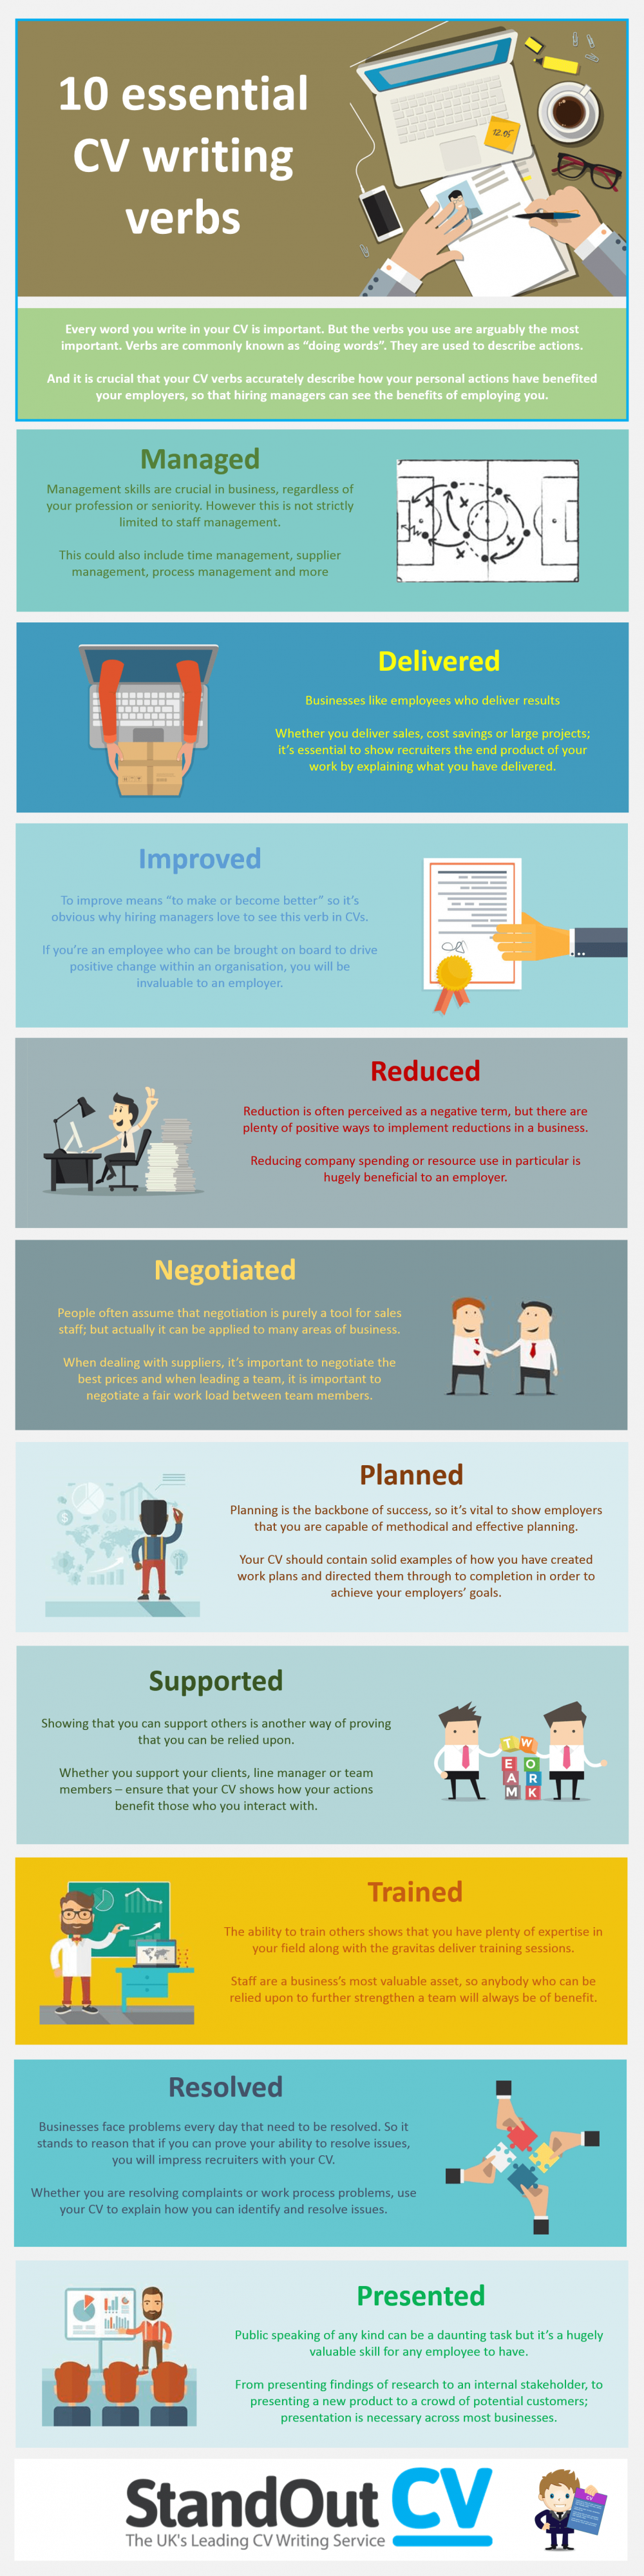 10 Essential CV Writing Verbs Infographic | Resumes/Interviews ...